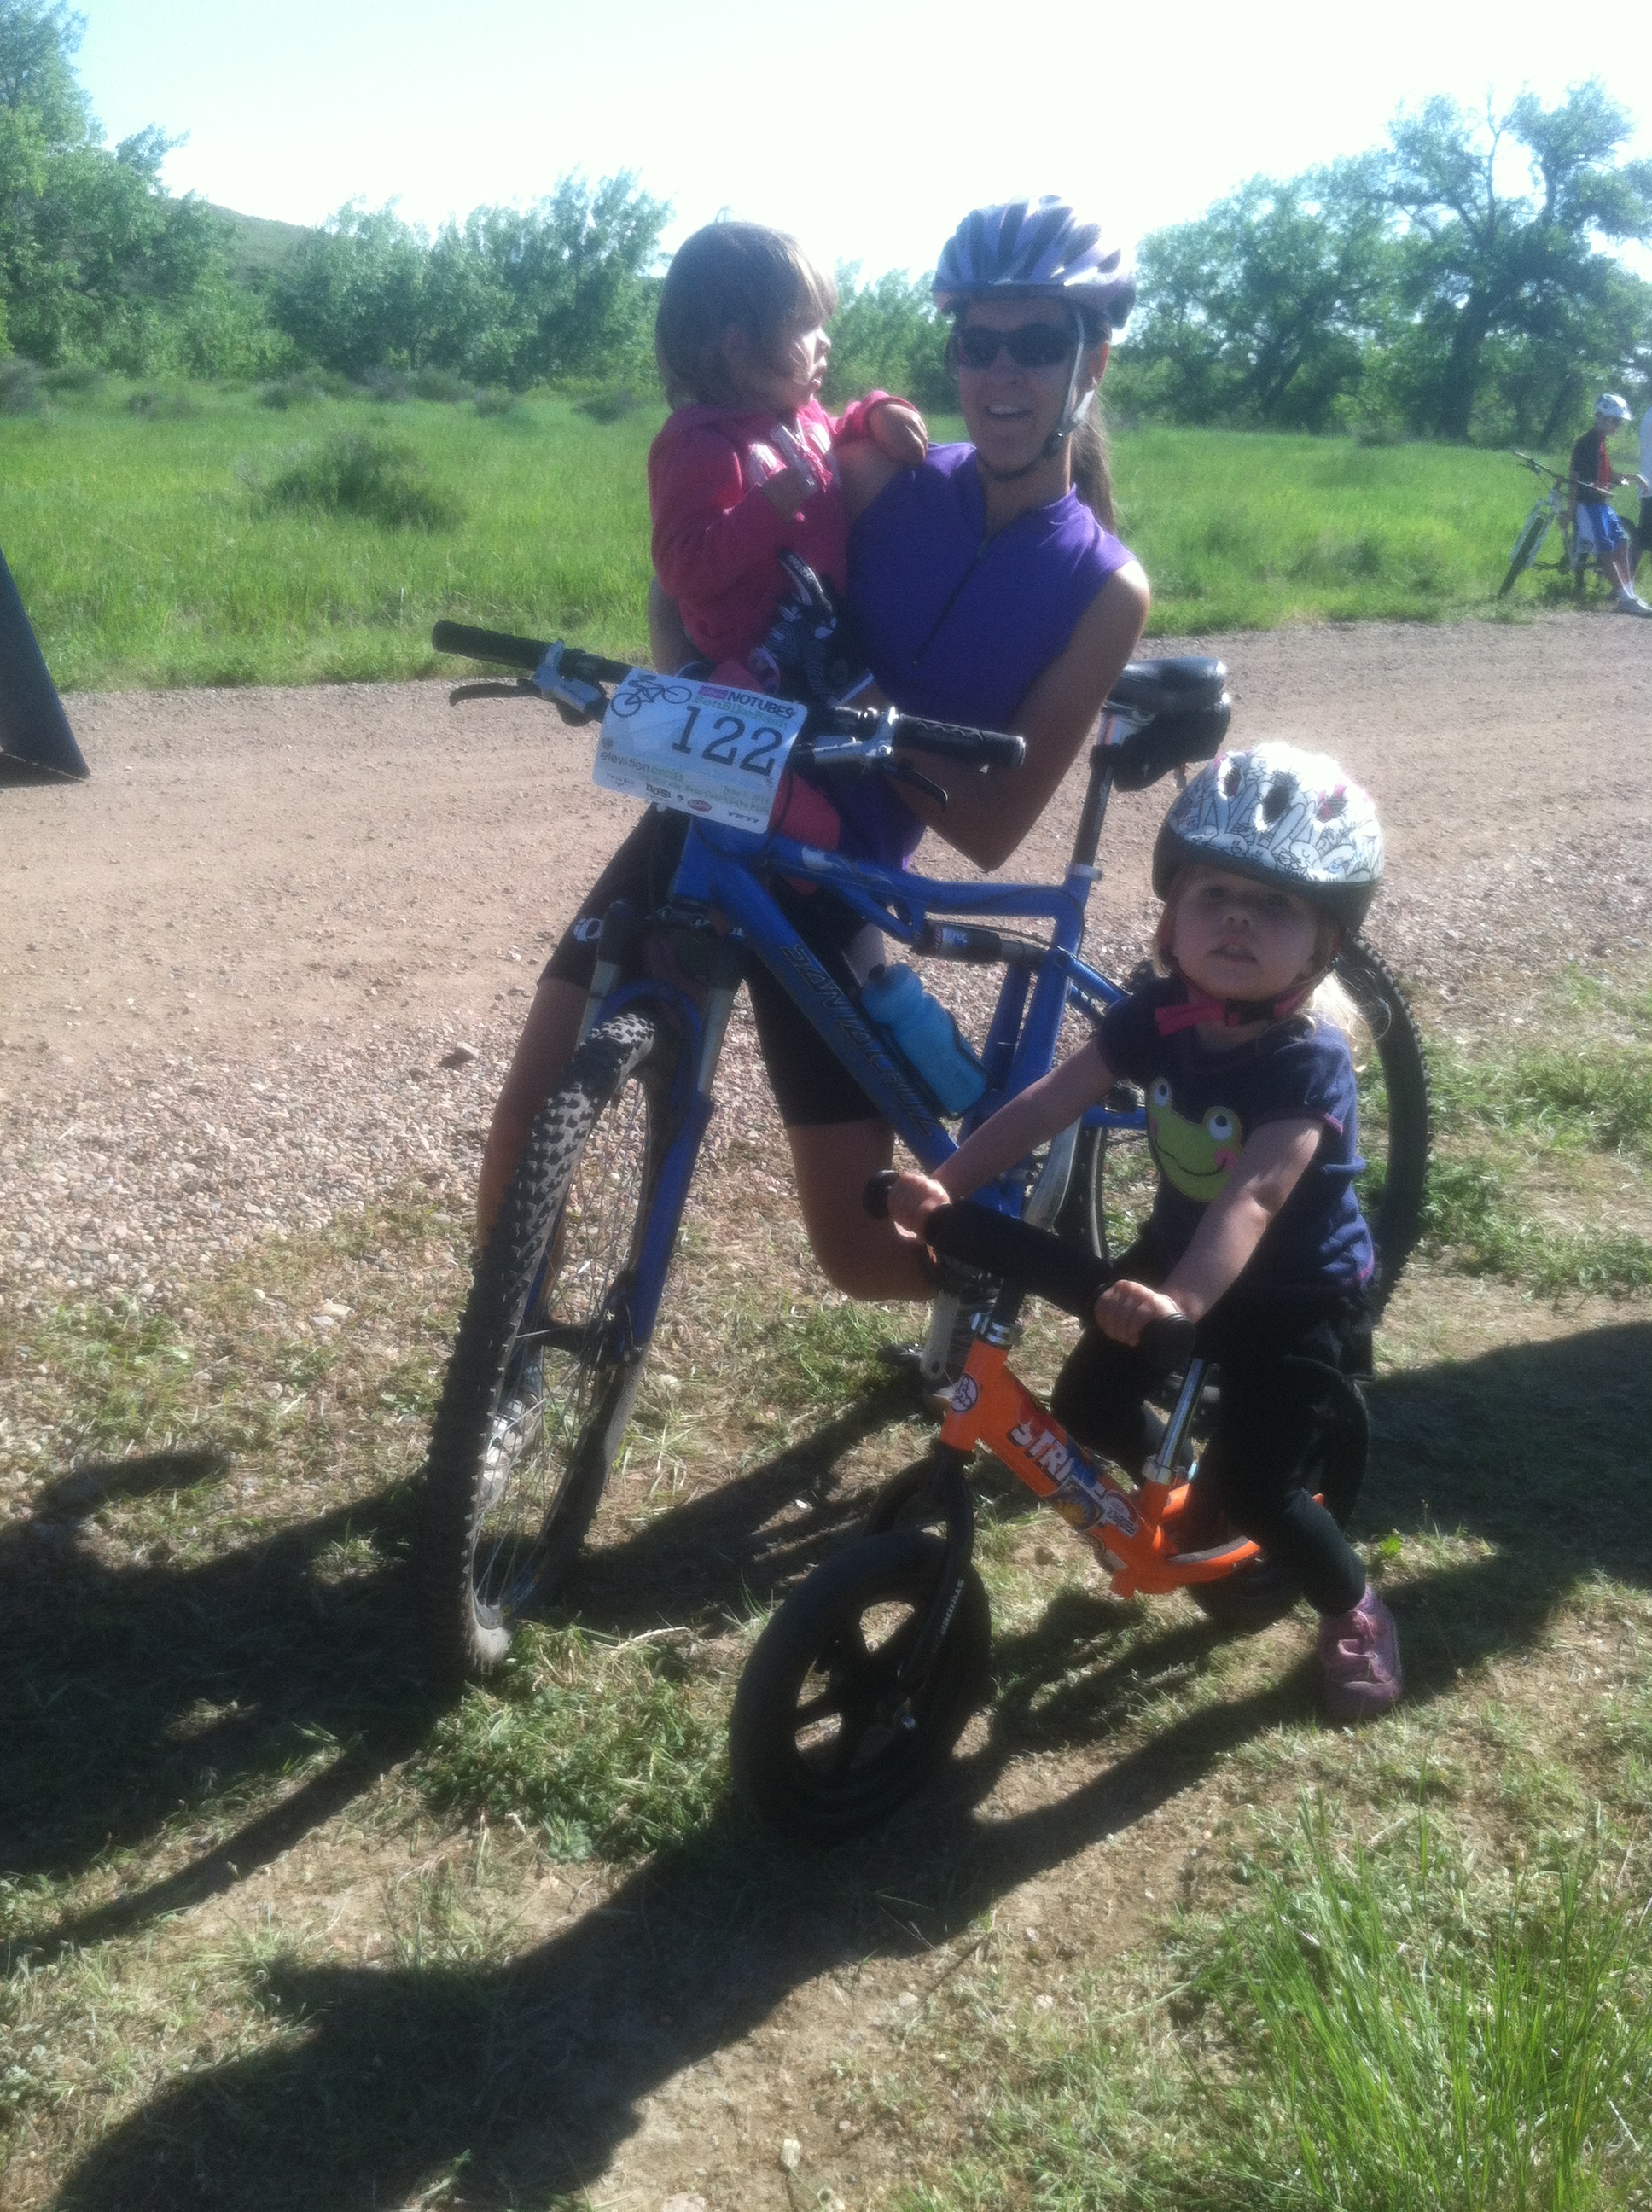 This woman encapsulated the event- pushing her bike, with one kid on her arm and the other next to her. Mommies race, too!